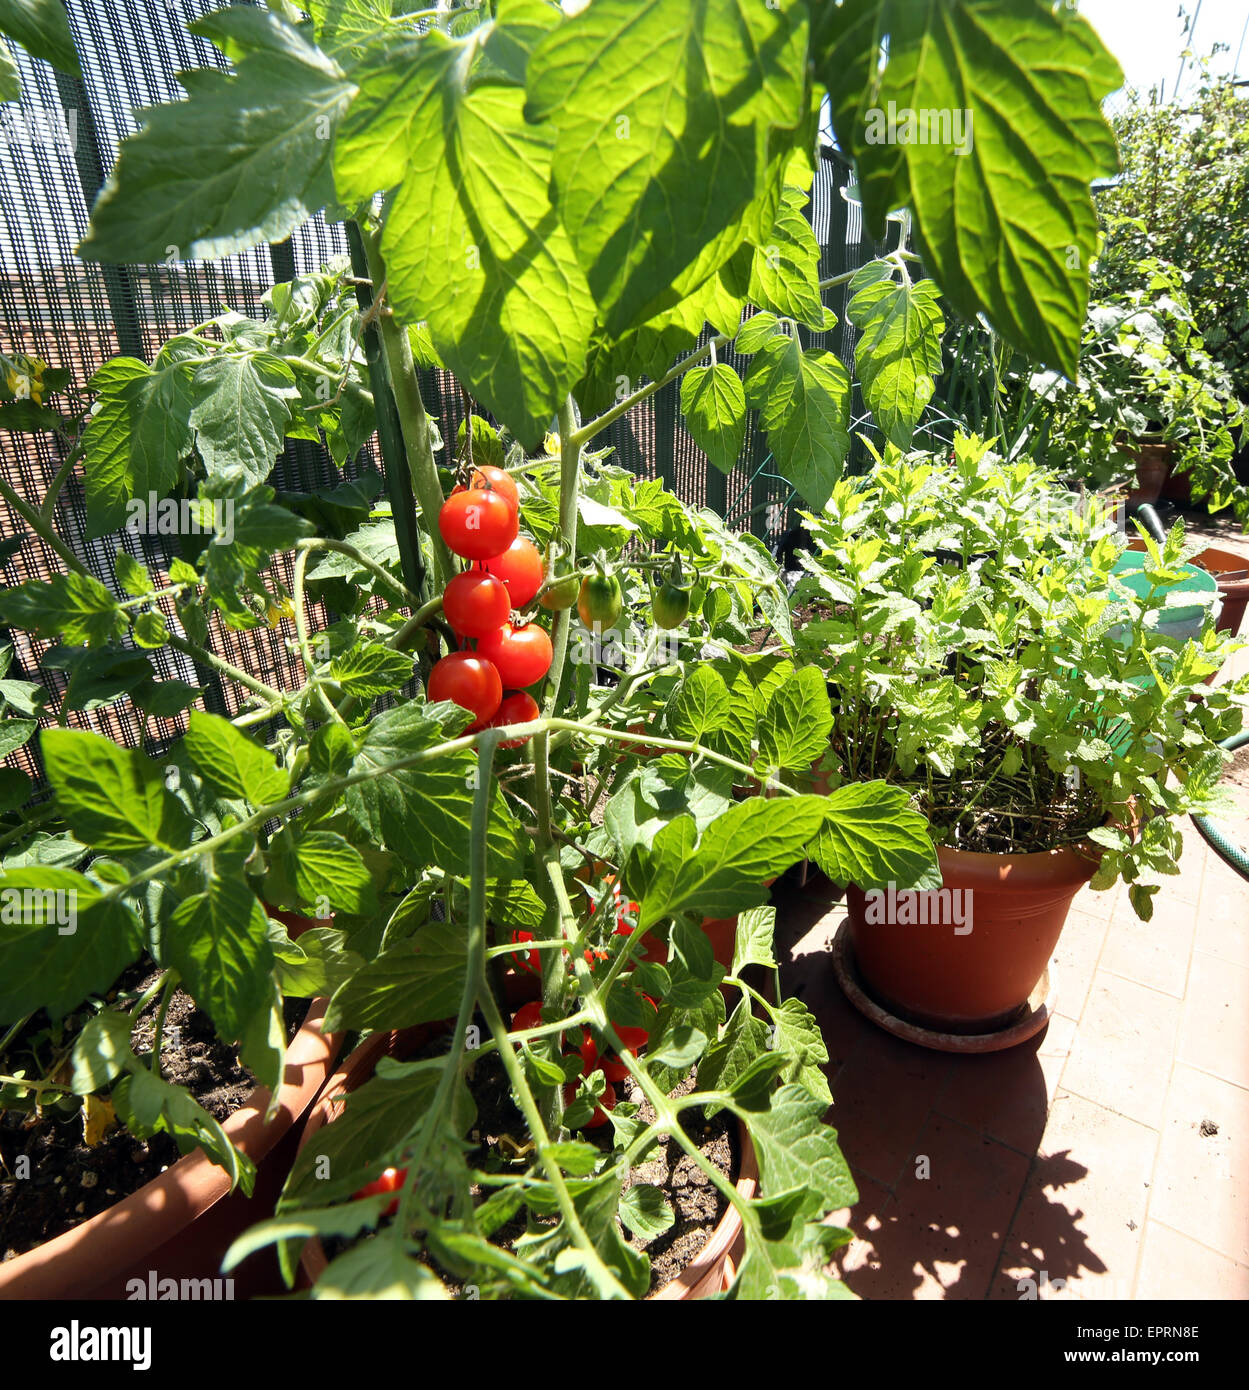 many pots in the balcony garden with tomato plants - Stock Image